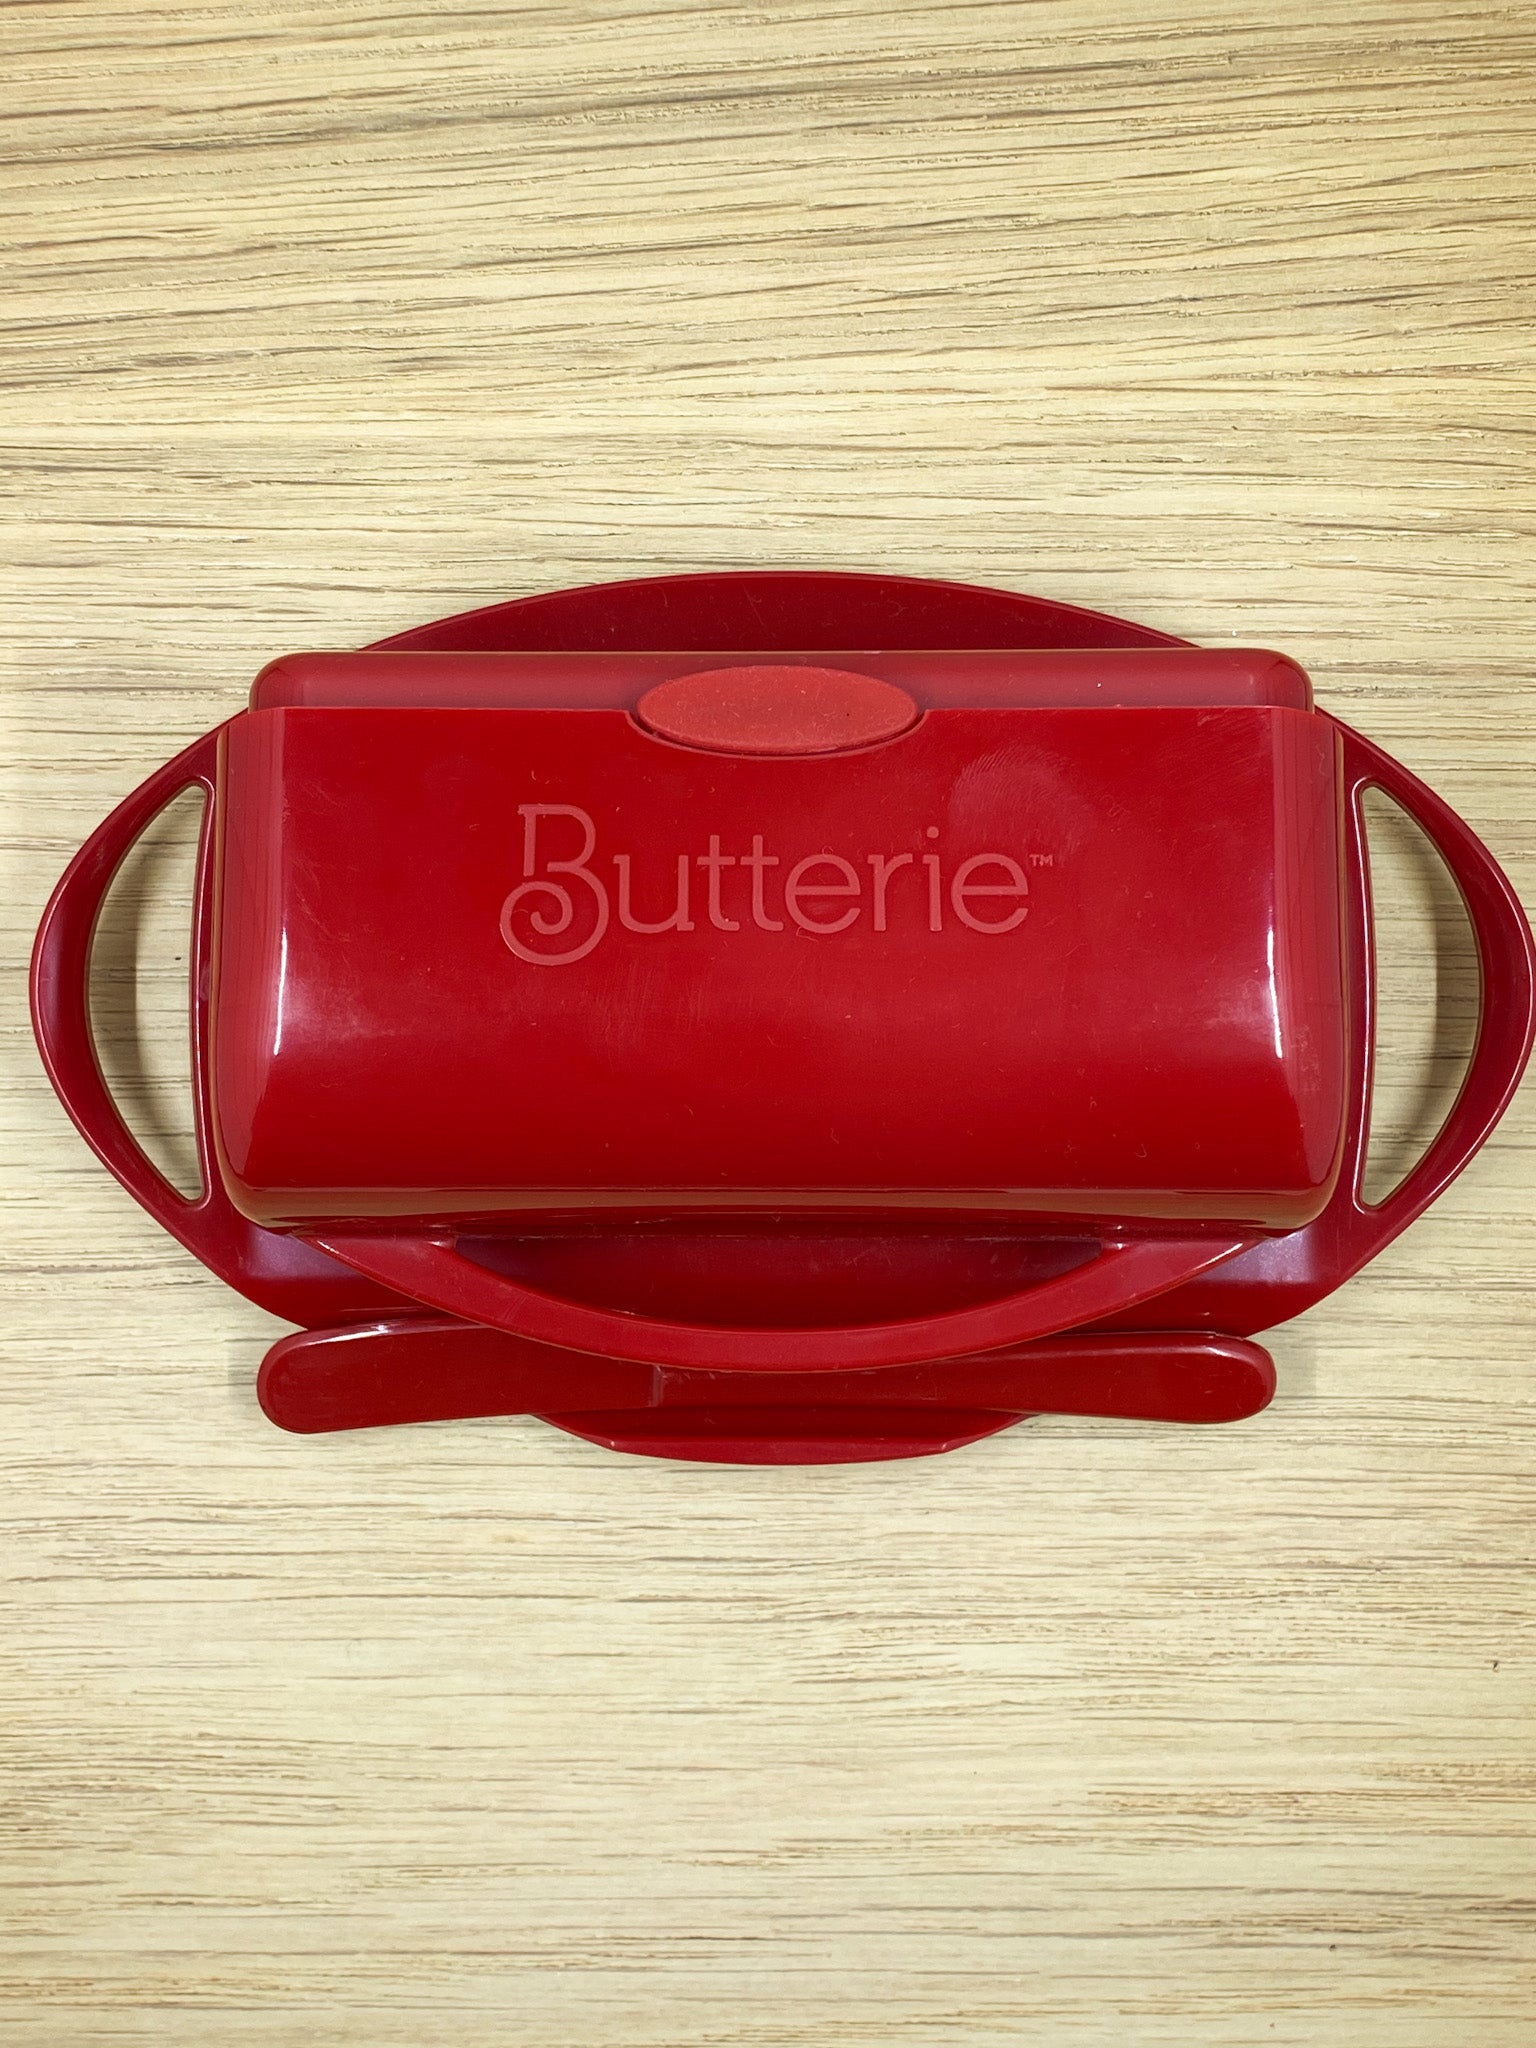 Butter Dish with Speader